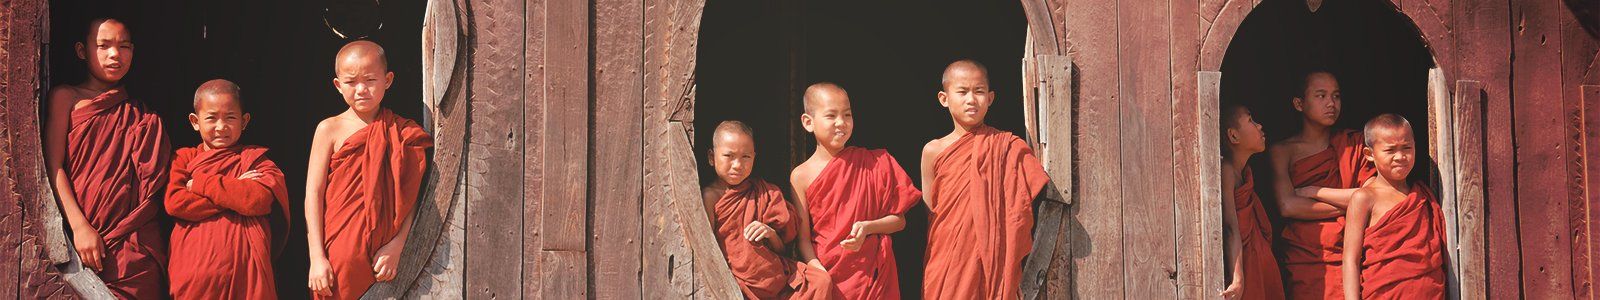 Novice Monks © iStockphoto.com/btrenkel